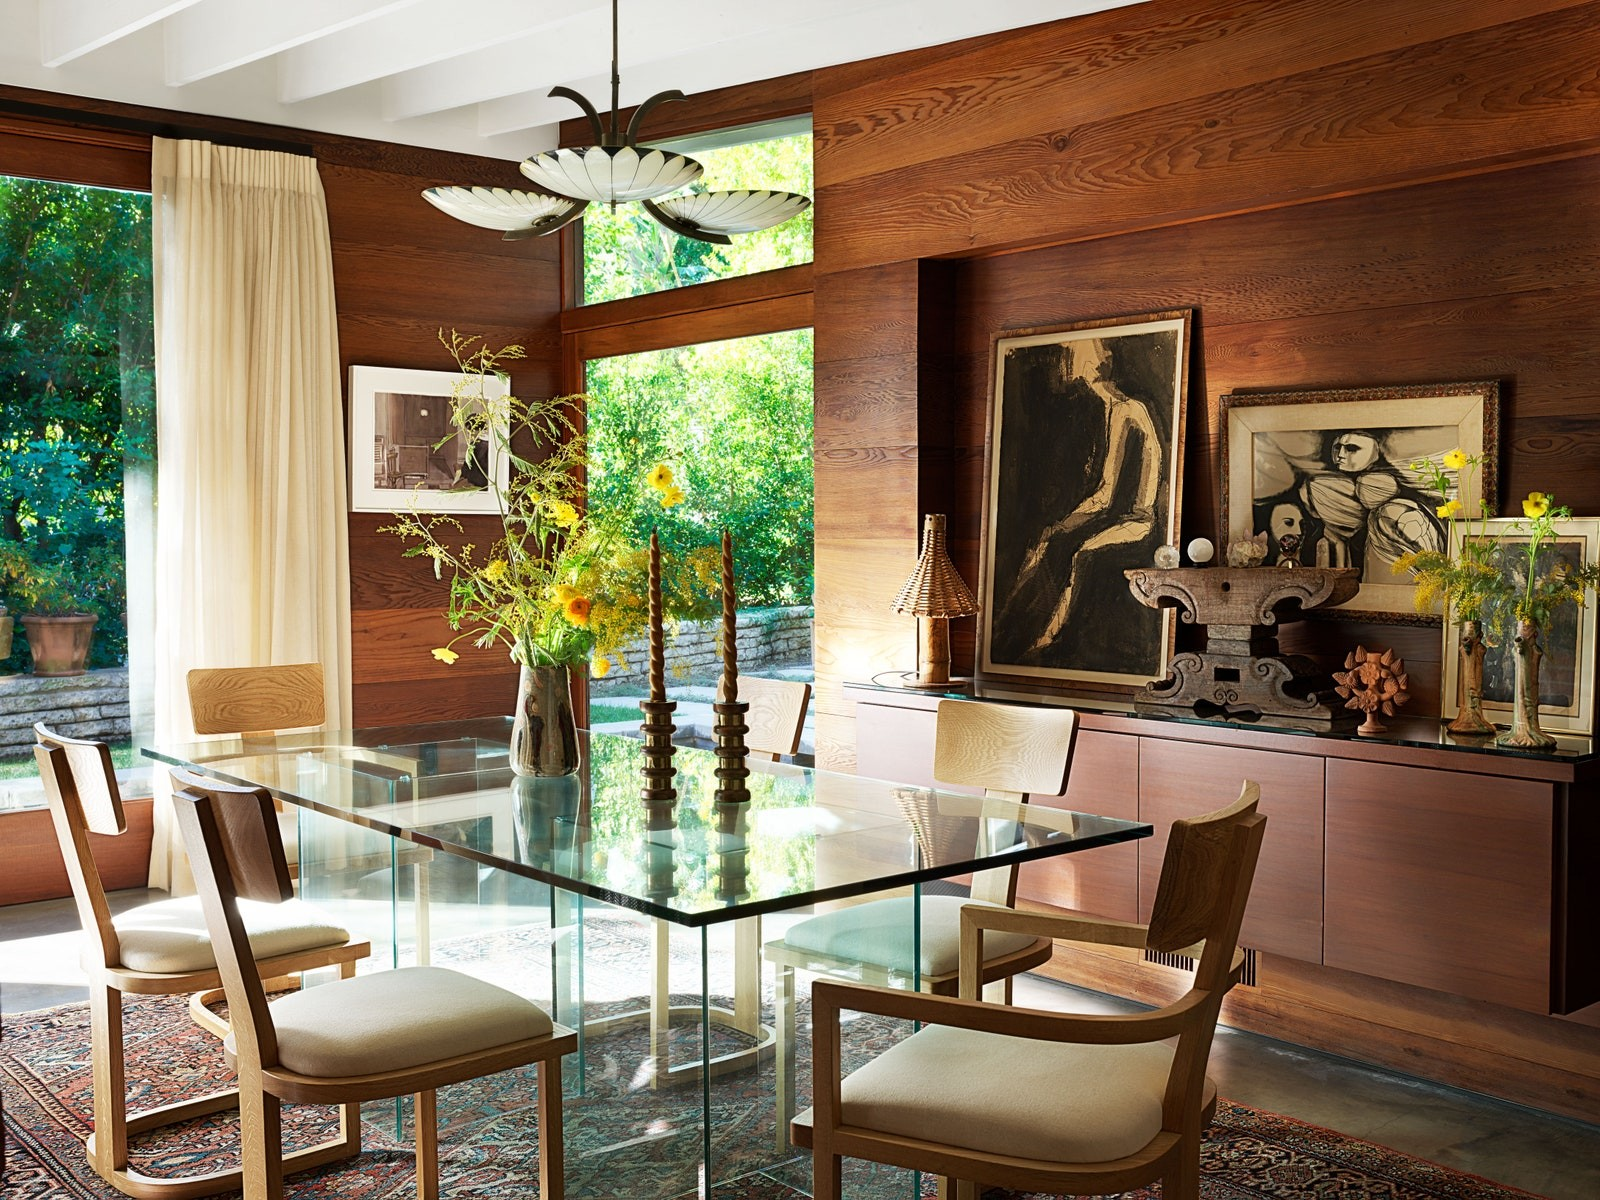 5 Outstandingly Designed Celebrity Homes to Take Inspiration From 4